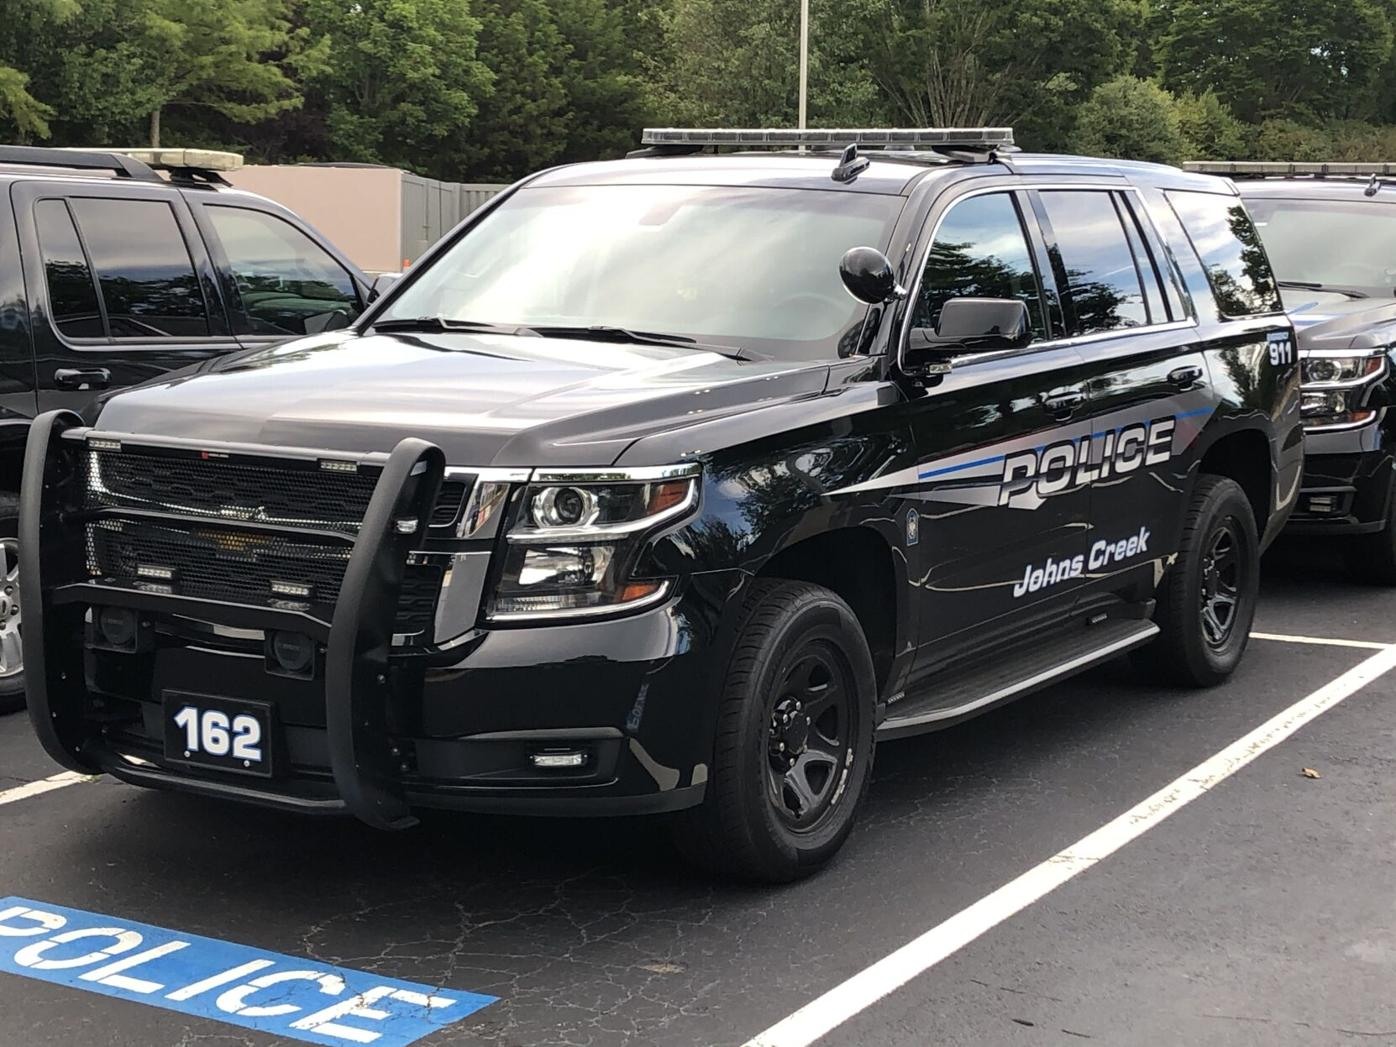 Johns Creek Police Car